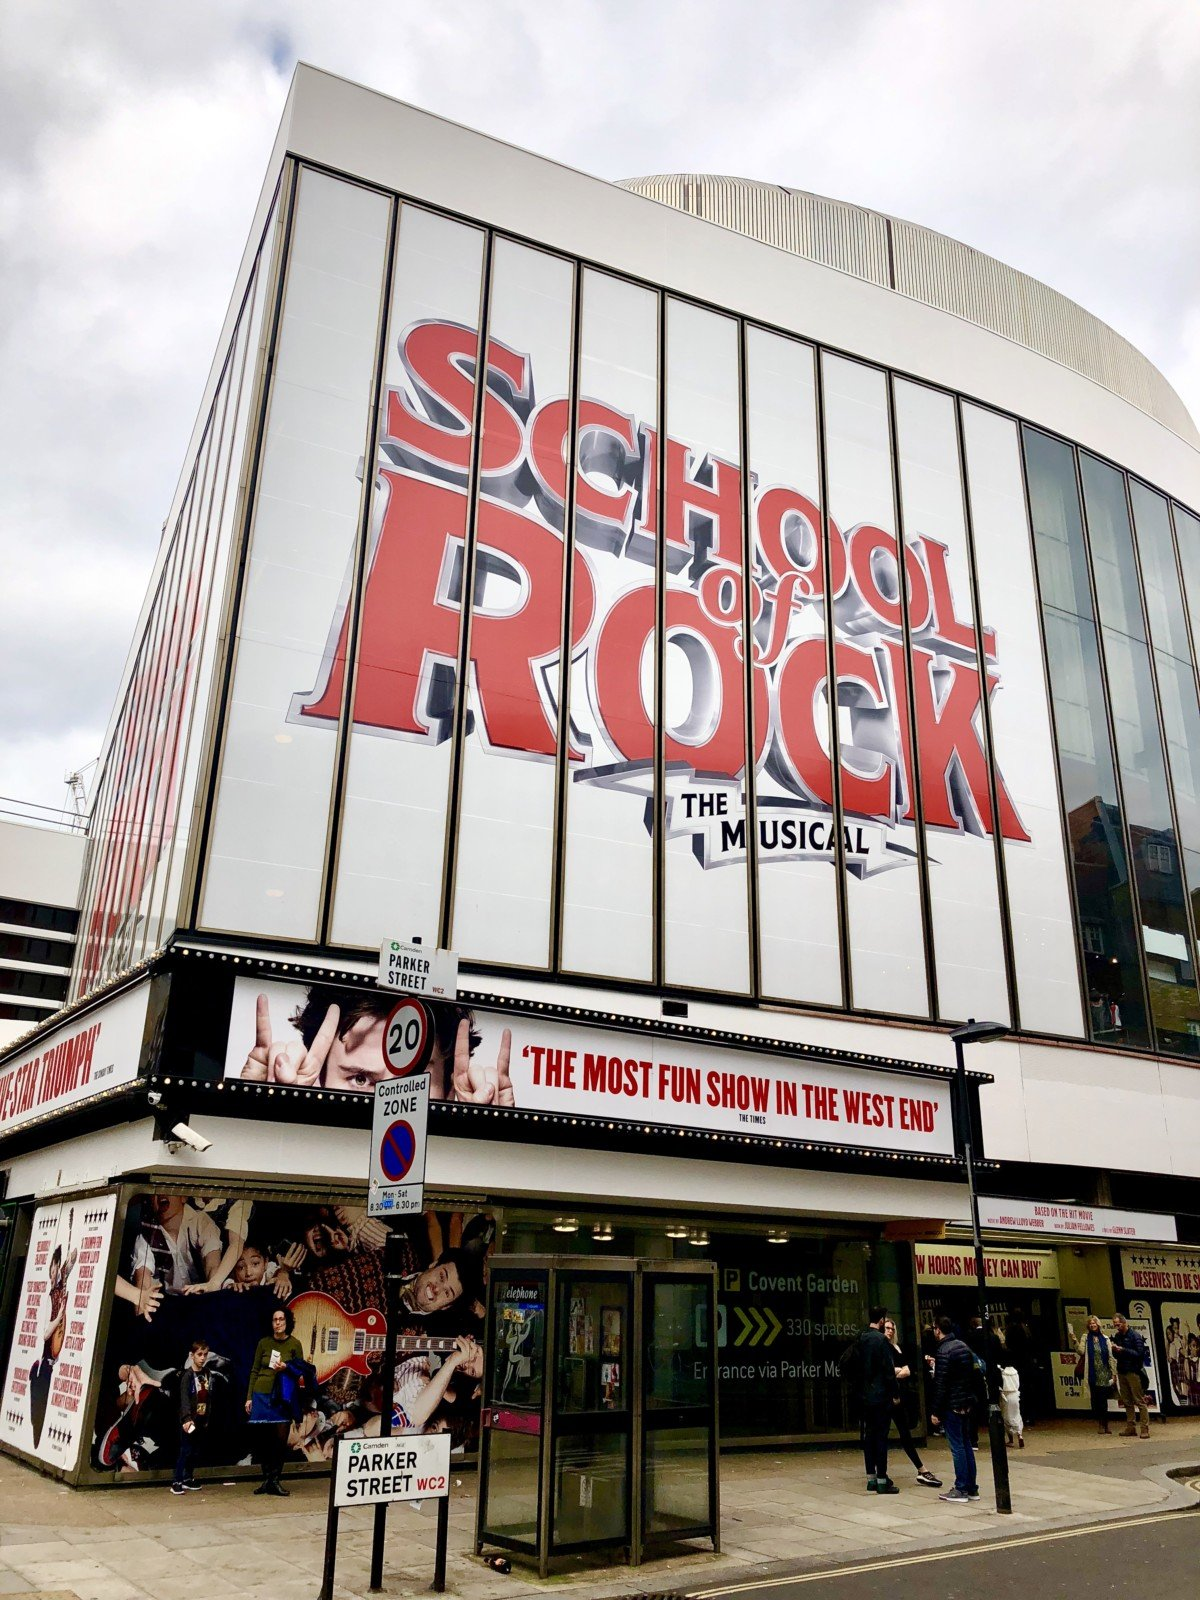 School of Rock the Musical Cheap tickets for as little as £15 in London with the Lottery ticket entry online